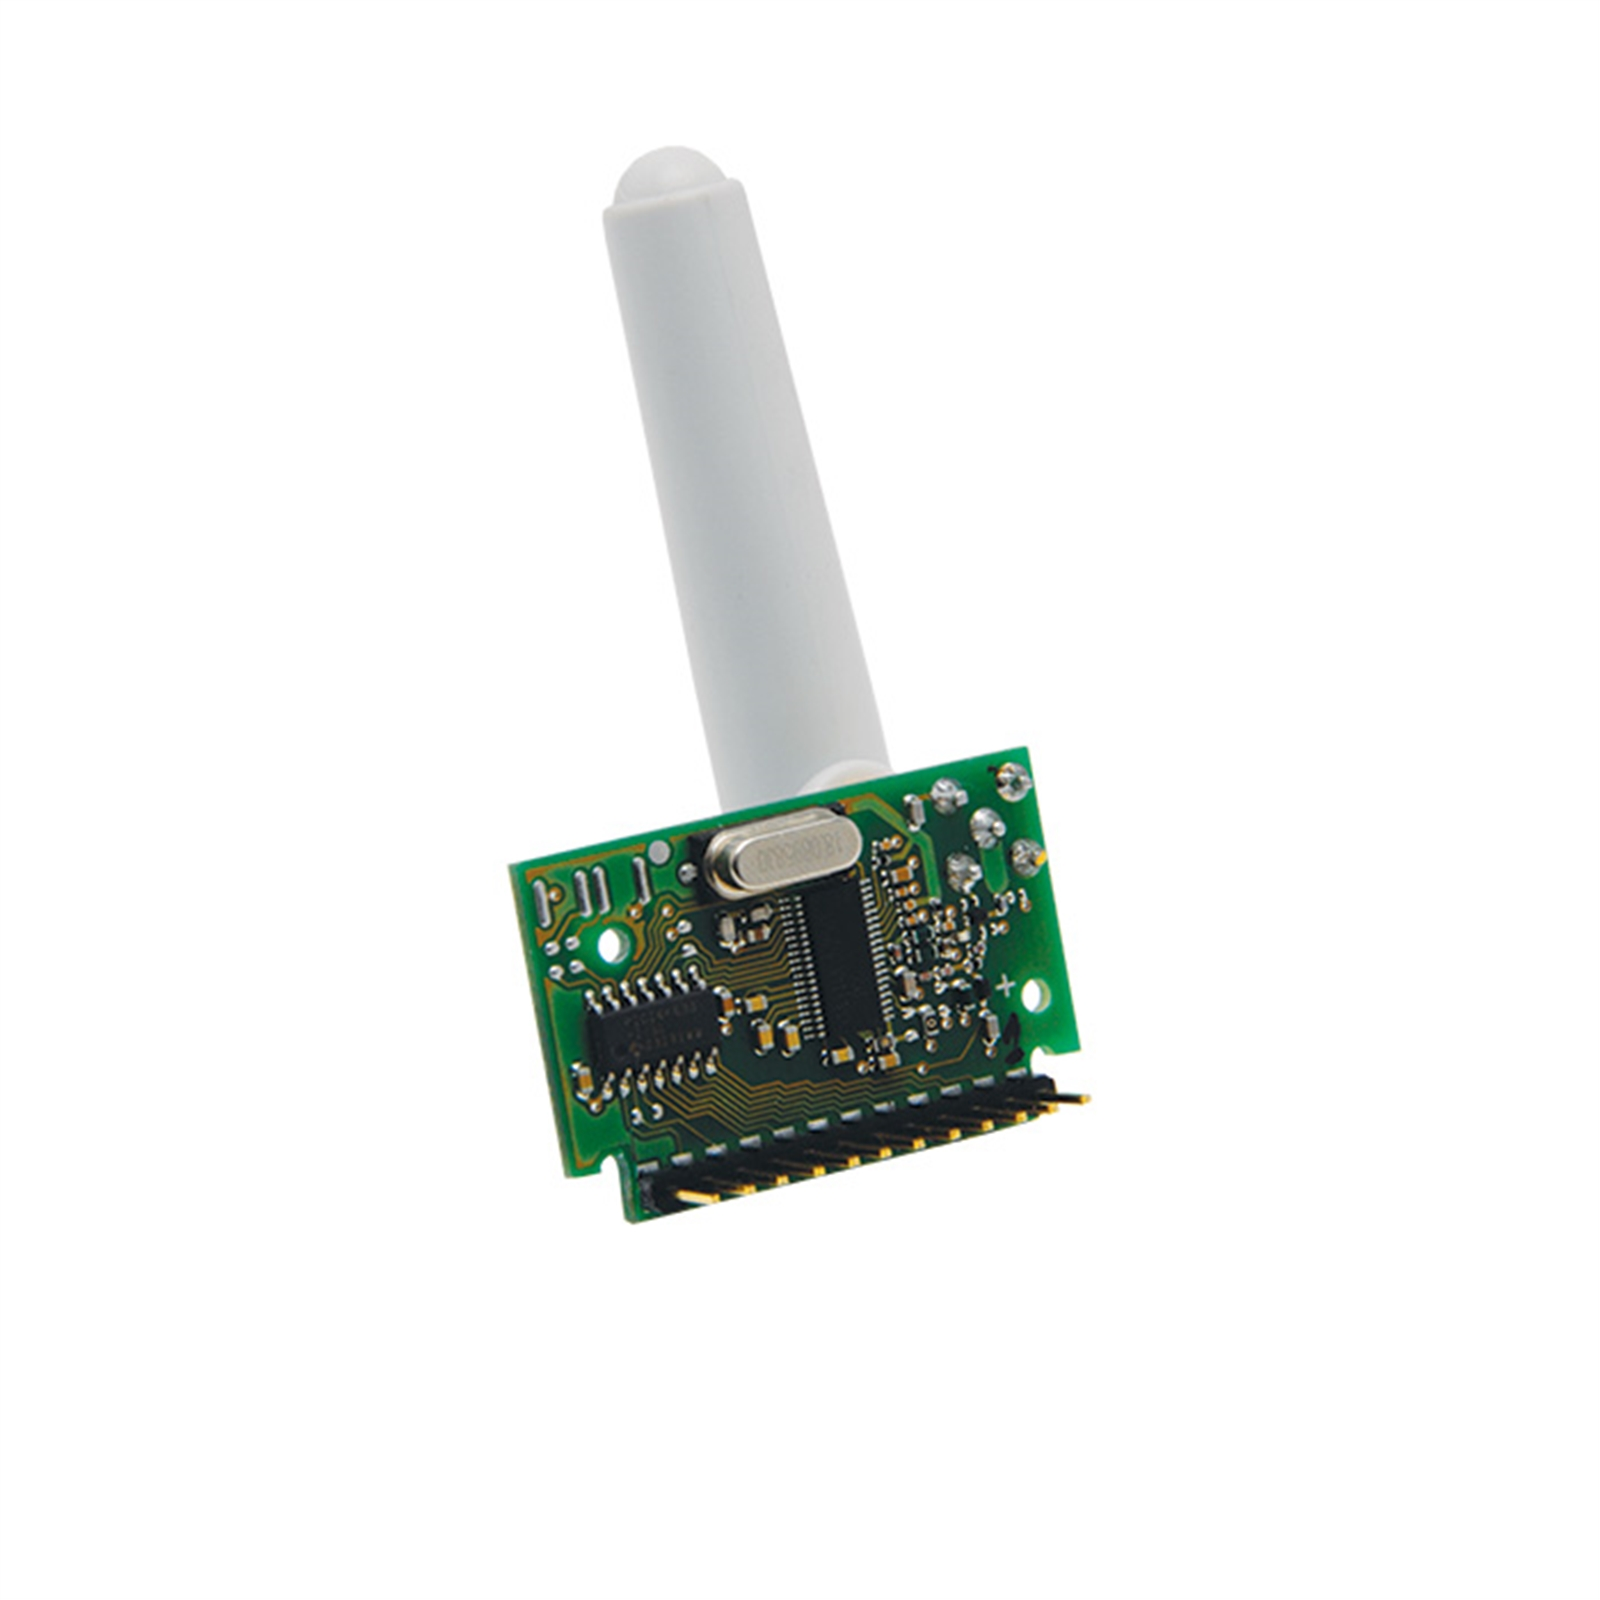 Optional wireless remote control receiver for PM1122-INT